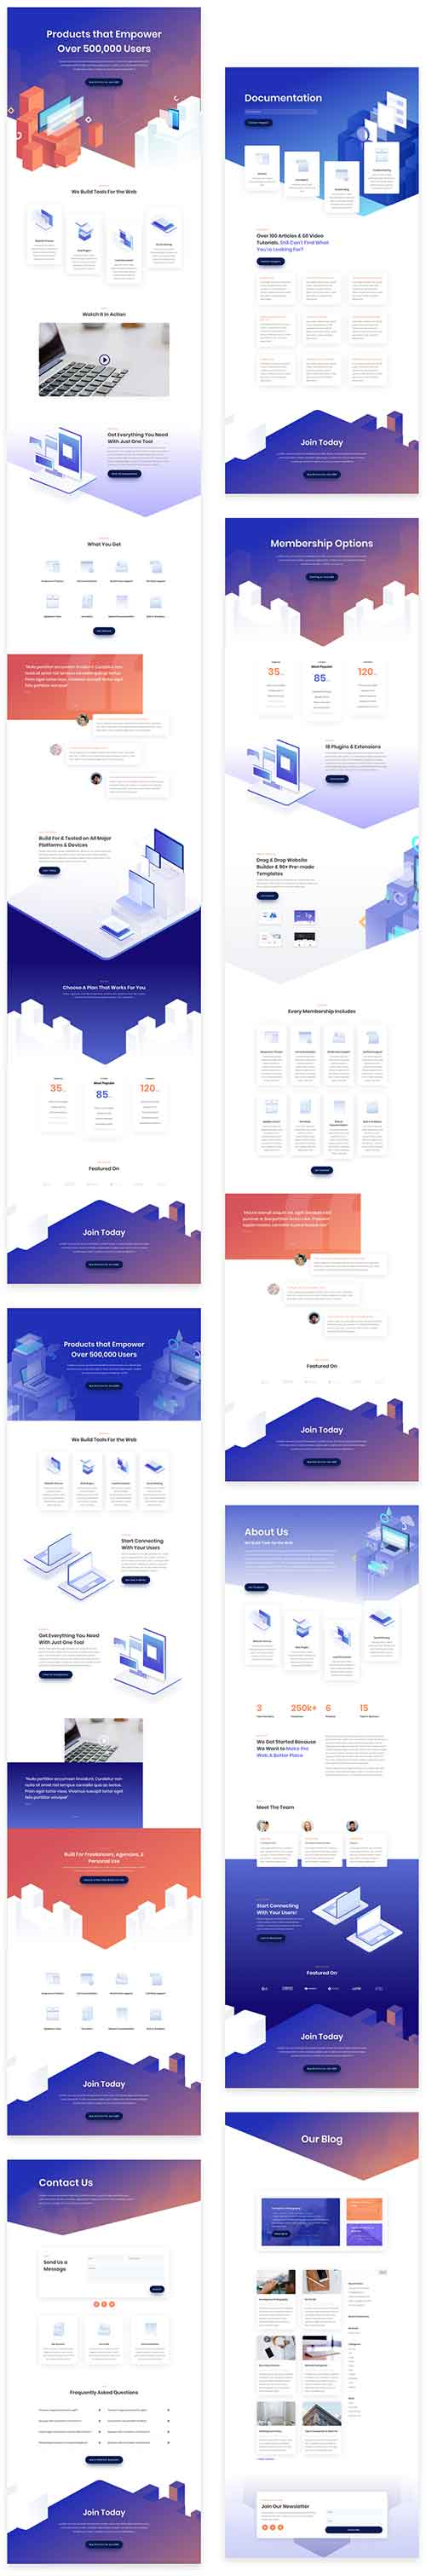 digital products divi layout